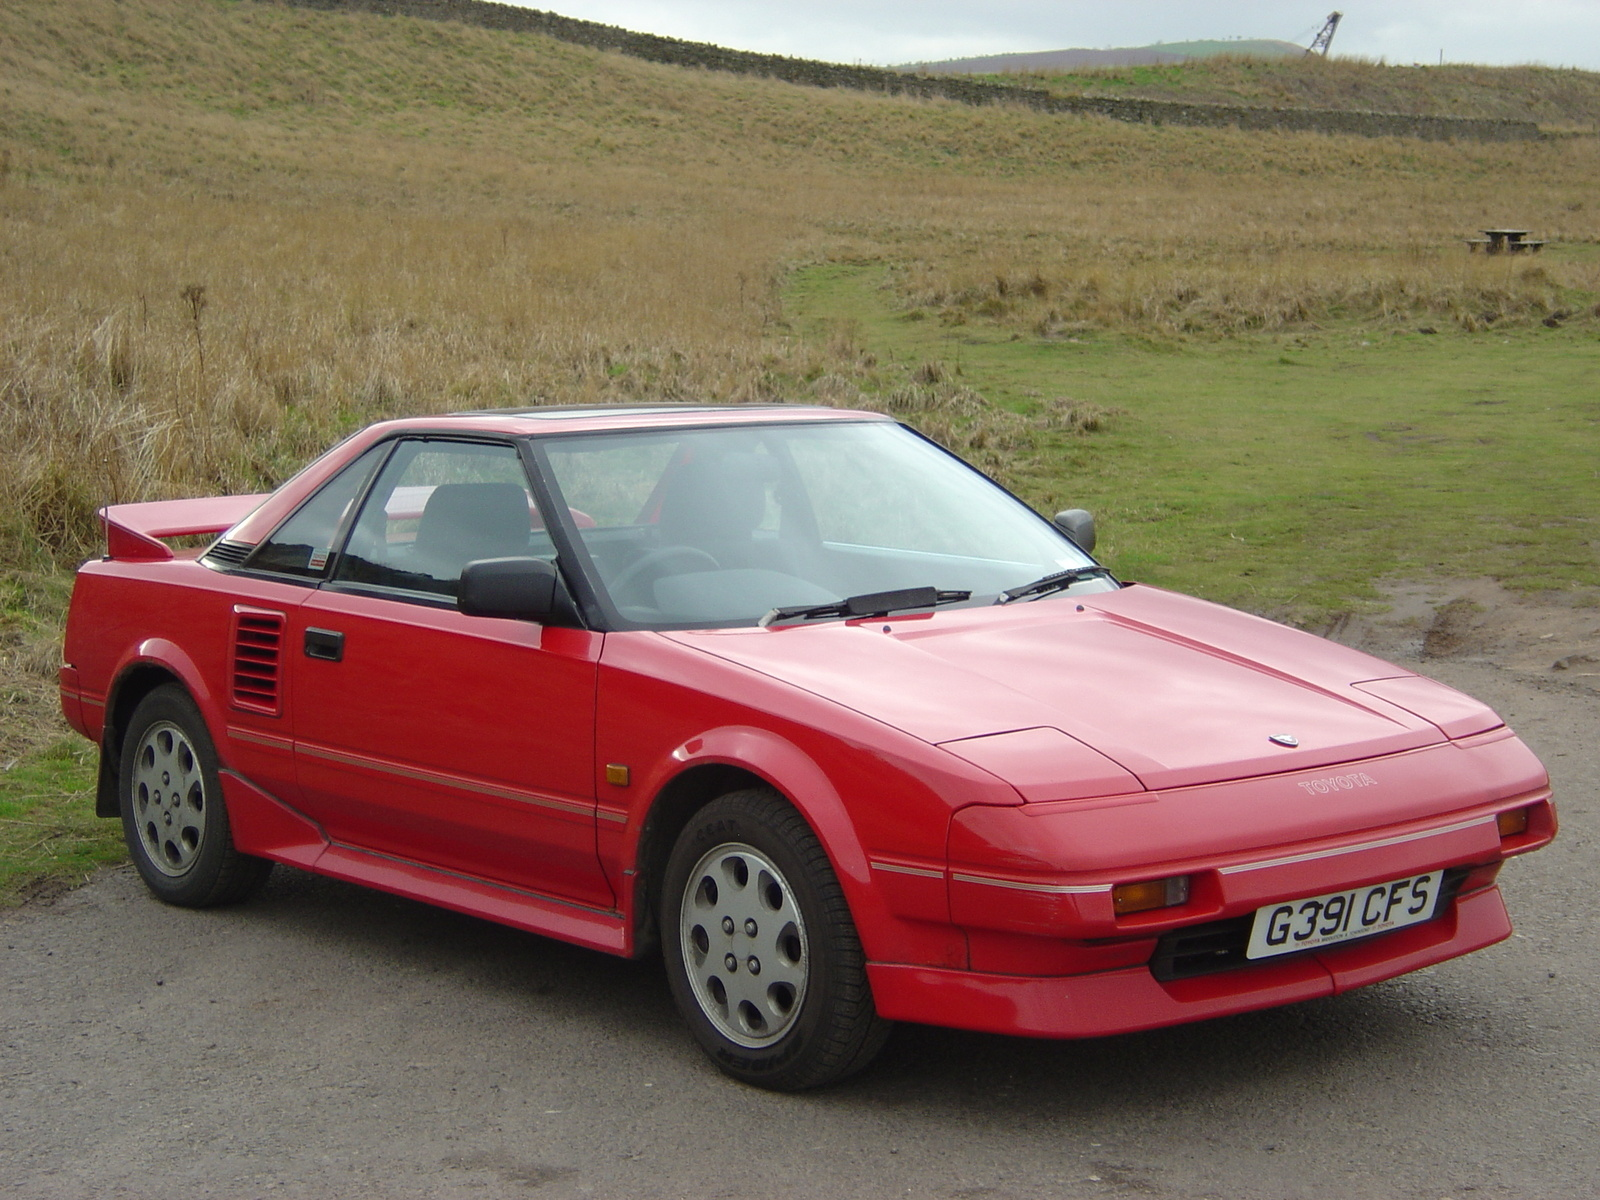 1989 Toyota MR2 - Overview - CarGurus